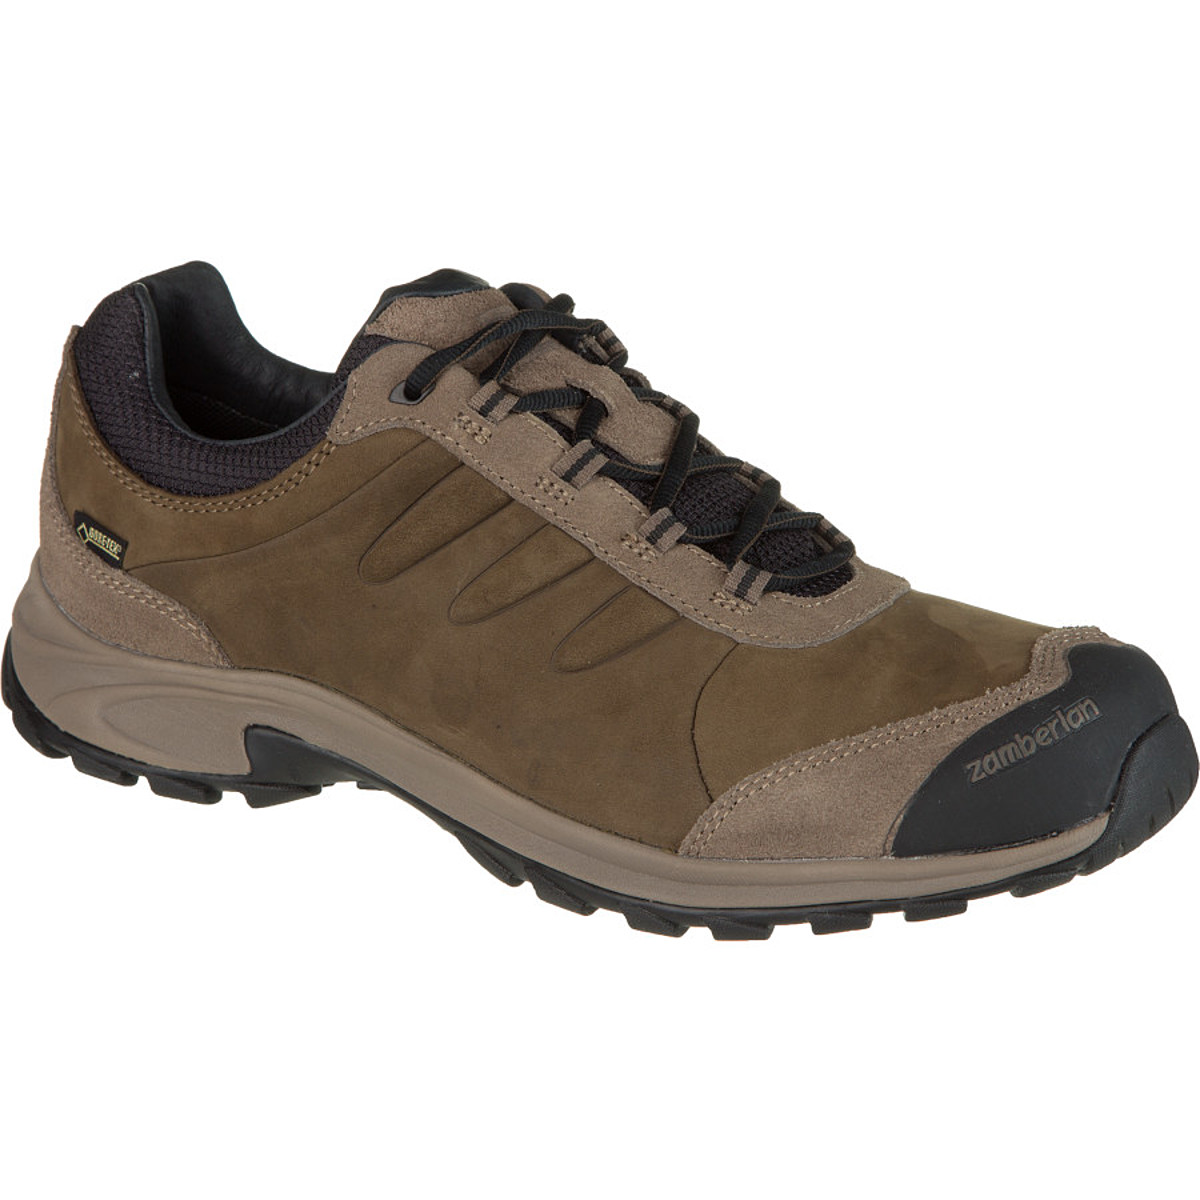 photo of a Zamberlan trail shoe